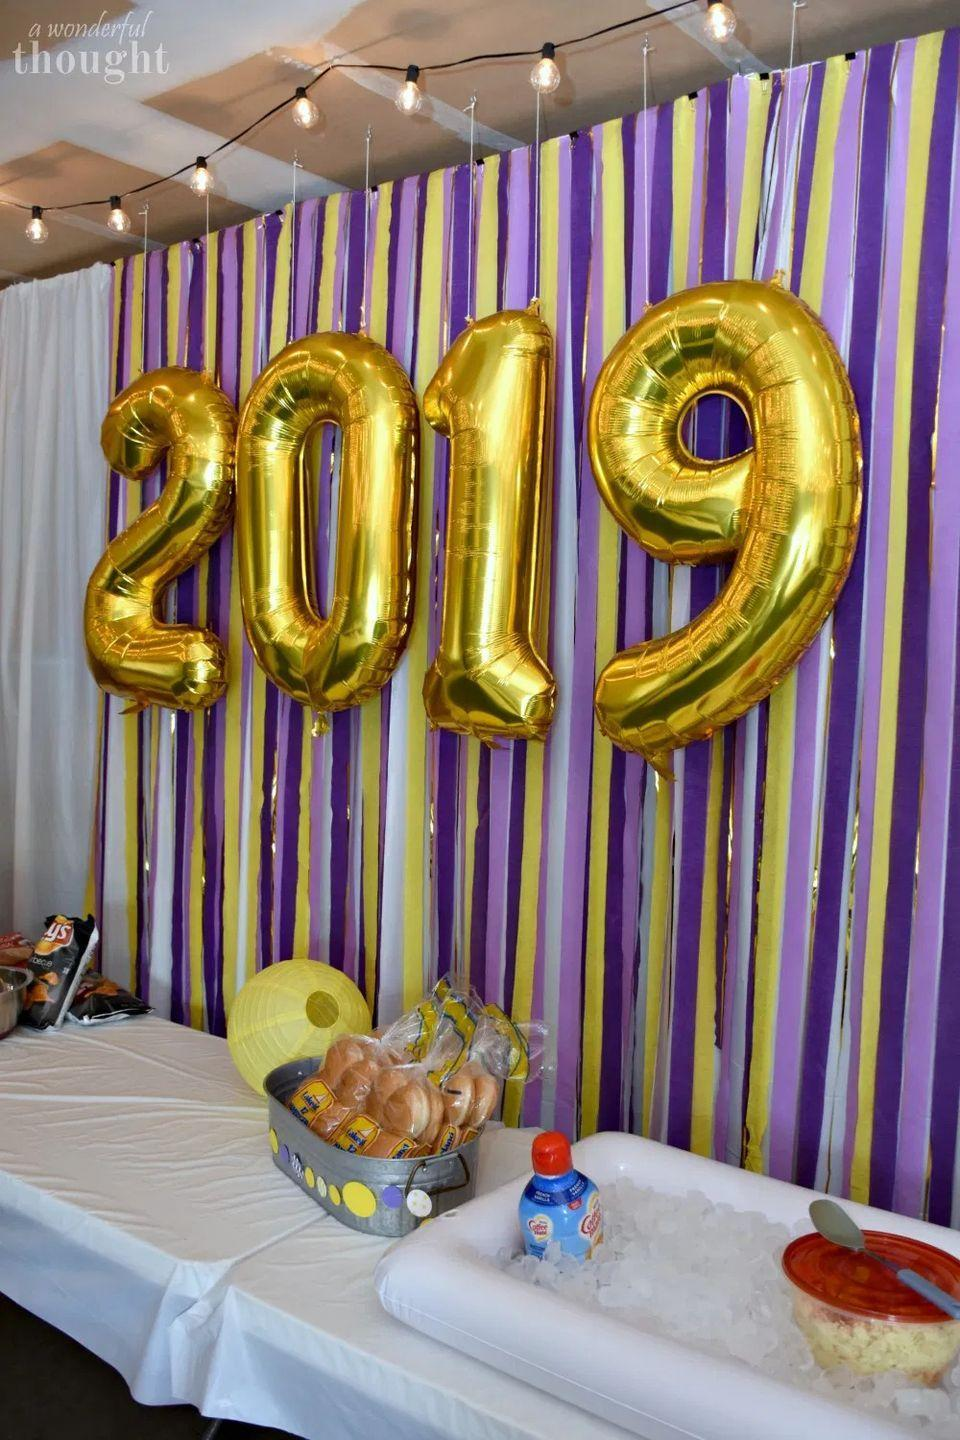 "<p>All that great food at the graduation party should really be spotlighted with an eye-catching backdrop! All you need are colorful streamers and balloons with their graduating year. </p><p><strong>Get the tutorial at <a href=""https://awonderfulthought.com/graduation-party-ideas-garage-party/"" rel=""nofollow noopener"" target=""_blank"" data-ylk=""slk:A Wonderful Thought"" class=""link rapid-noclick-resp"">A Wonderful Thought</a>.</strong></p><p><a class=""link rapid-noclick-resp"" href=""https://go.redirectingat.com?id=74968X1596630&url=https%3A%2F%2Fwww.walmart.com%2Fip%2FPurple-81-ft-Solid-Crepe-Streamer%2F298224428&sref=https%3A%2F%2Fwww.thepioneerwoman.com%2Fhome-lifestyle%2Fentertaining%2Fg36014713%2Fgraduation-party-ideas%2F"" rel=""nofollow noopener"" target=""_blank"" data-ylk=""slk:SHOP STREAMERS"">SHOP STREAMERS</a></p>"